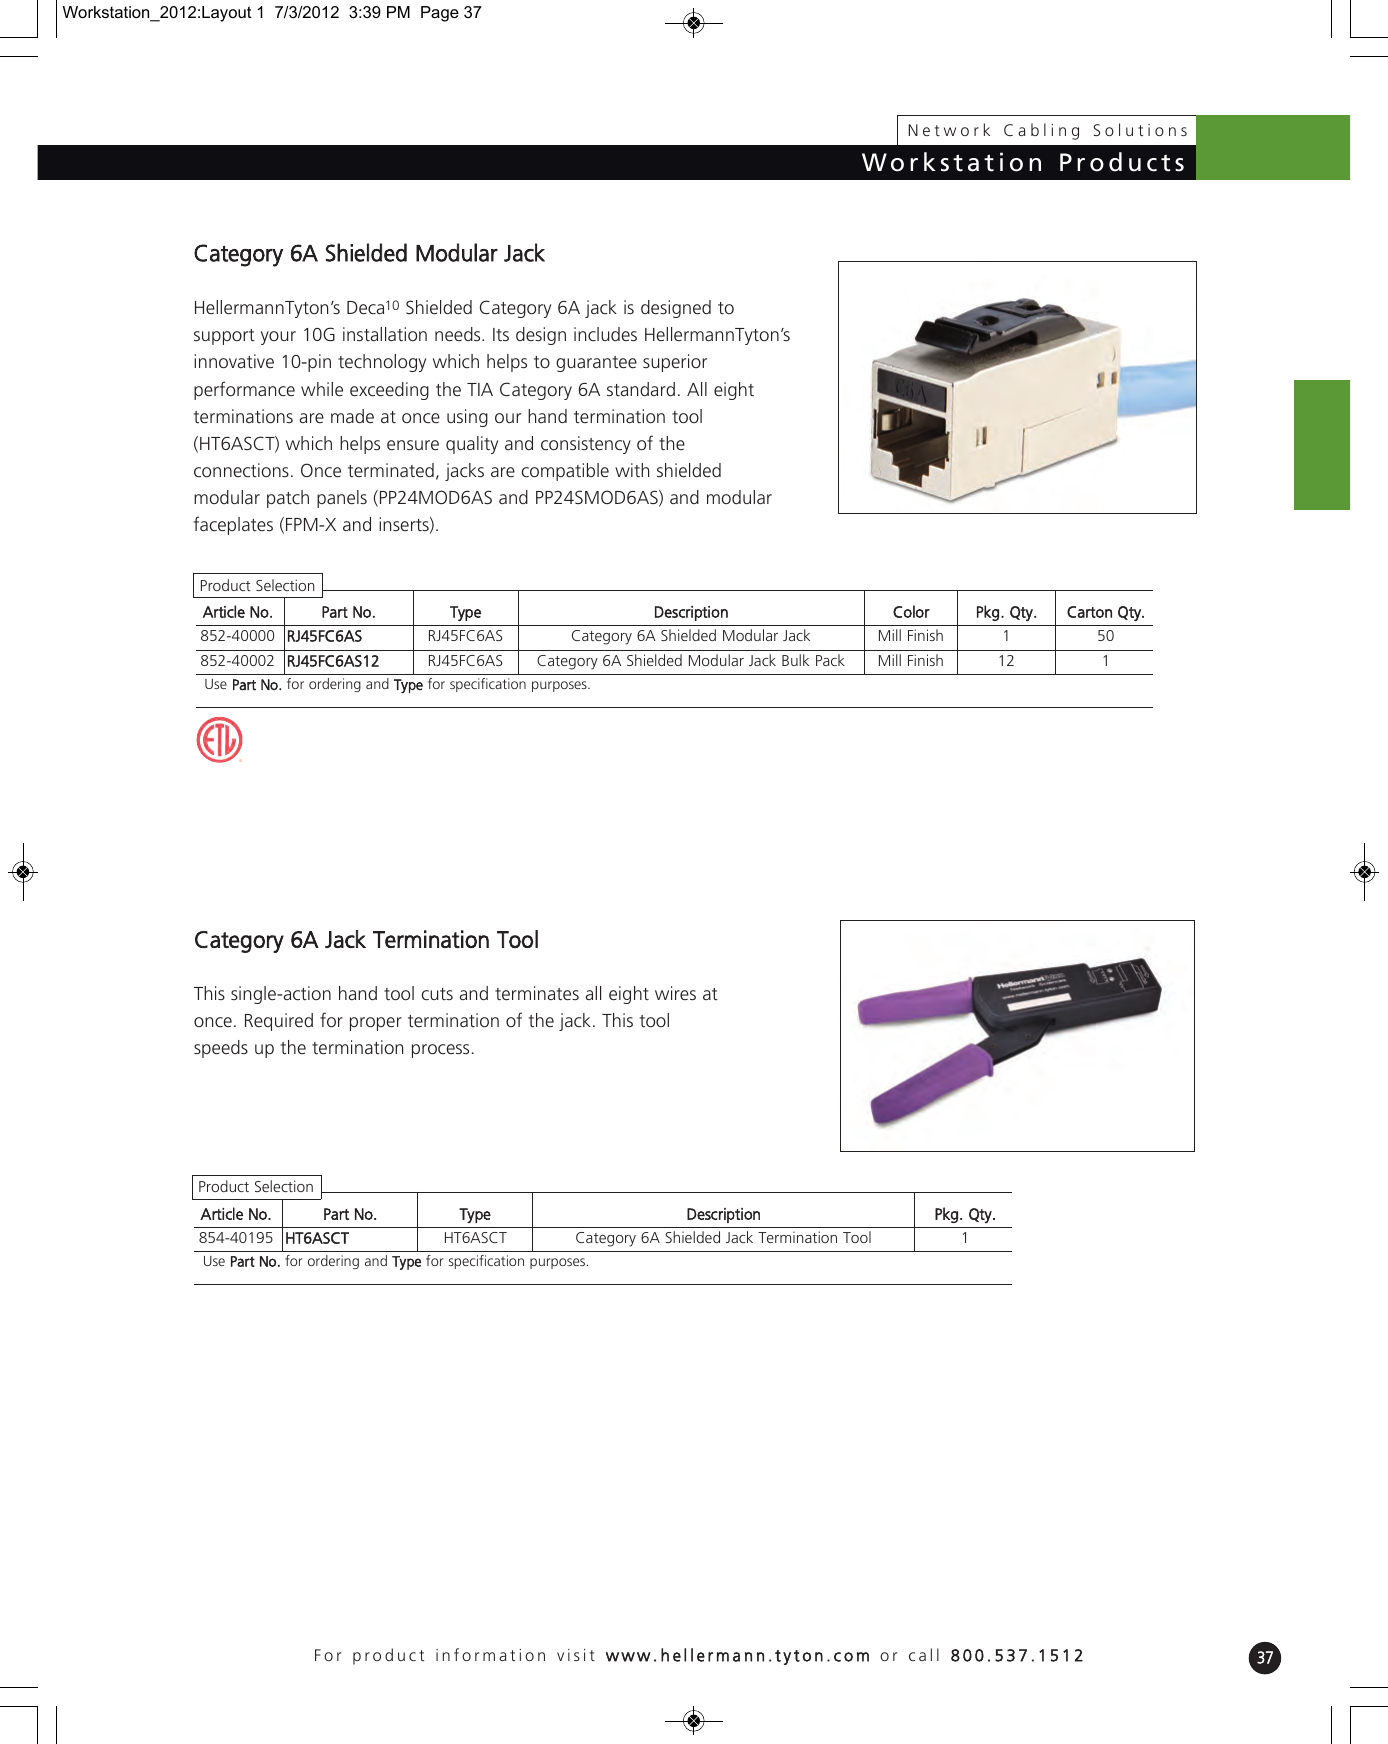 2LNG9 Pack of 2 Terminals: 0.250 Quick Connect Tab Power First Rocker Switch Number of Connections: 6 Contact Form: DPDT